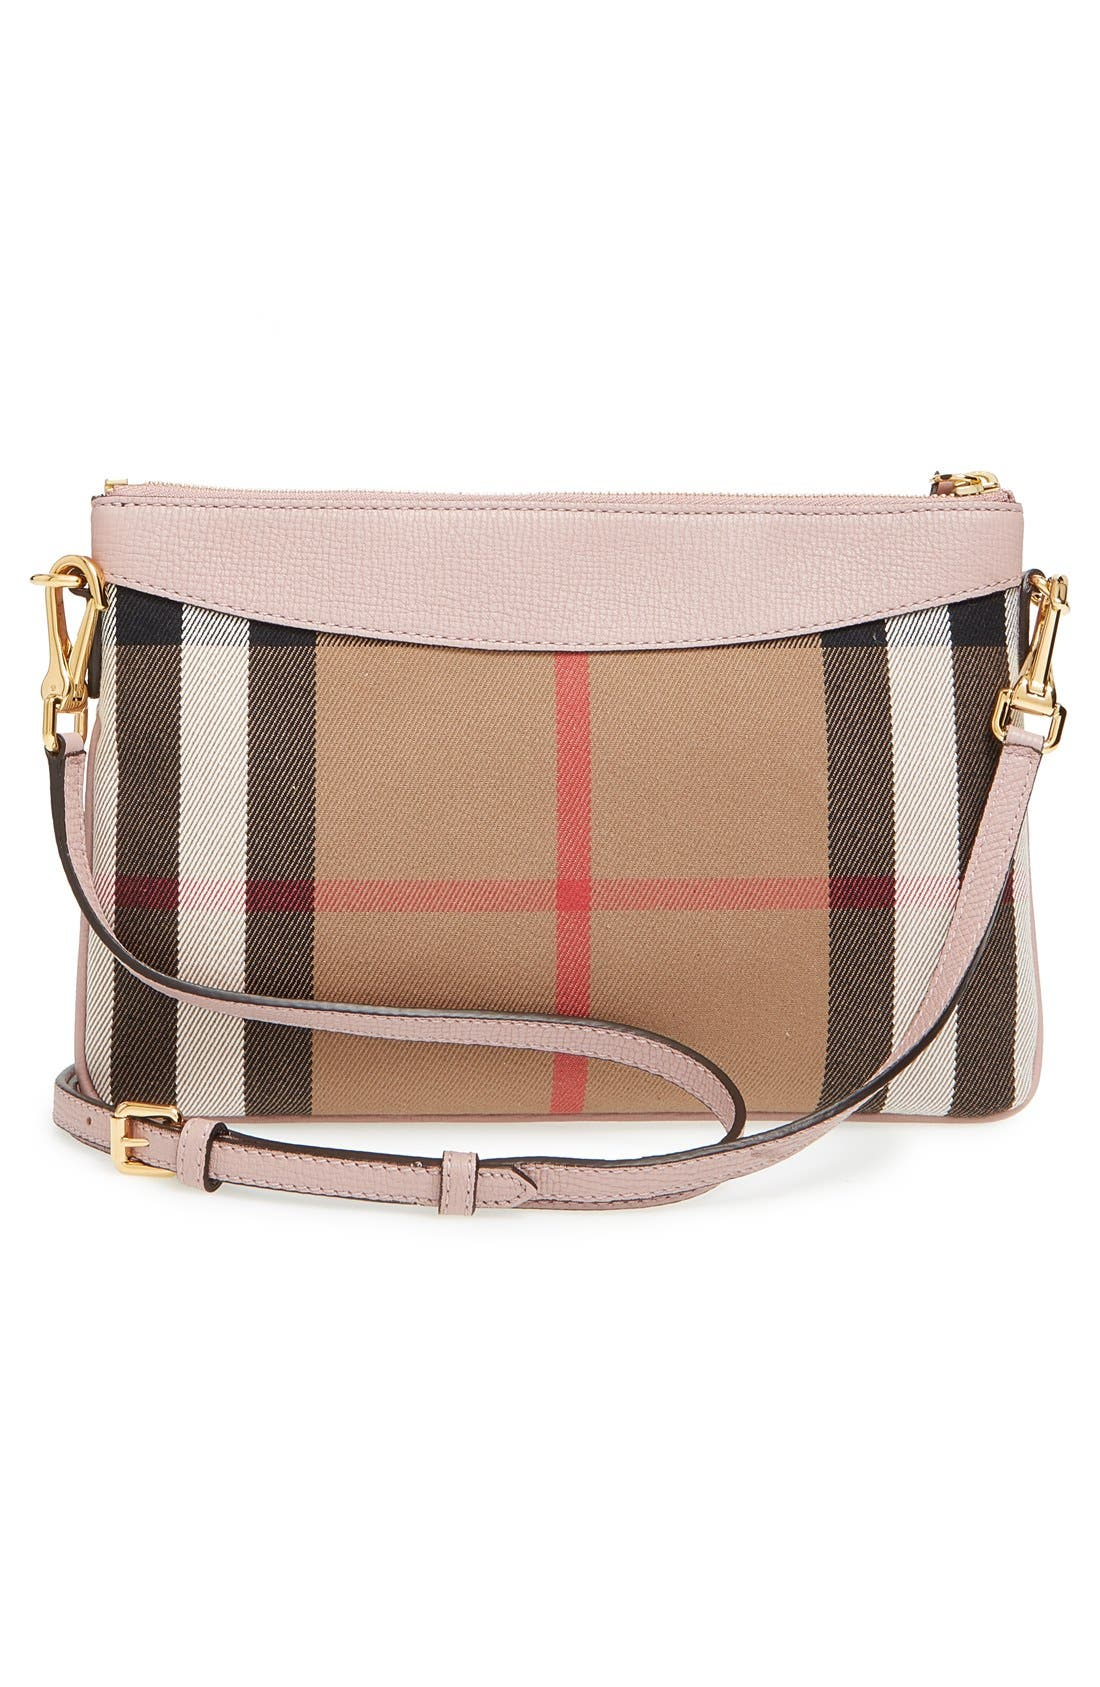 'Peyton - House Check' Crossbody Bag,                             Alternate thumbnail 3, color,                             Pale Orchid